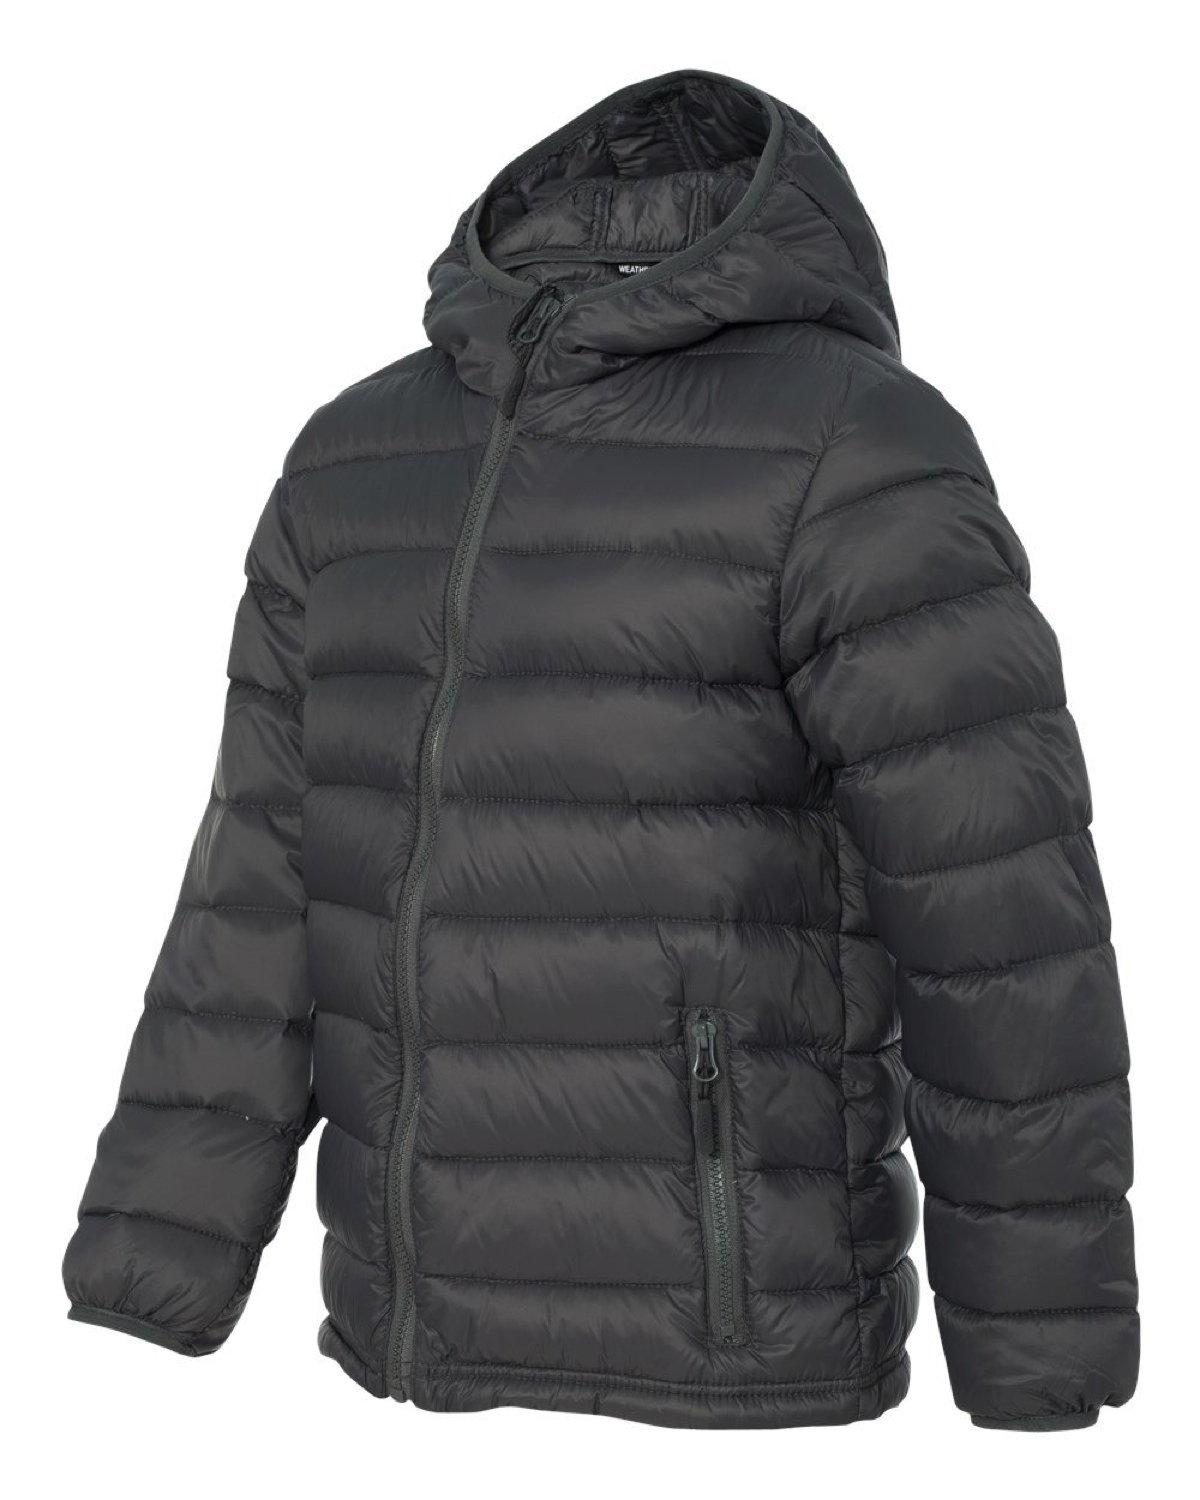 Embroidered 15600y Weatherproof Youth Packable Down Jacket